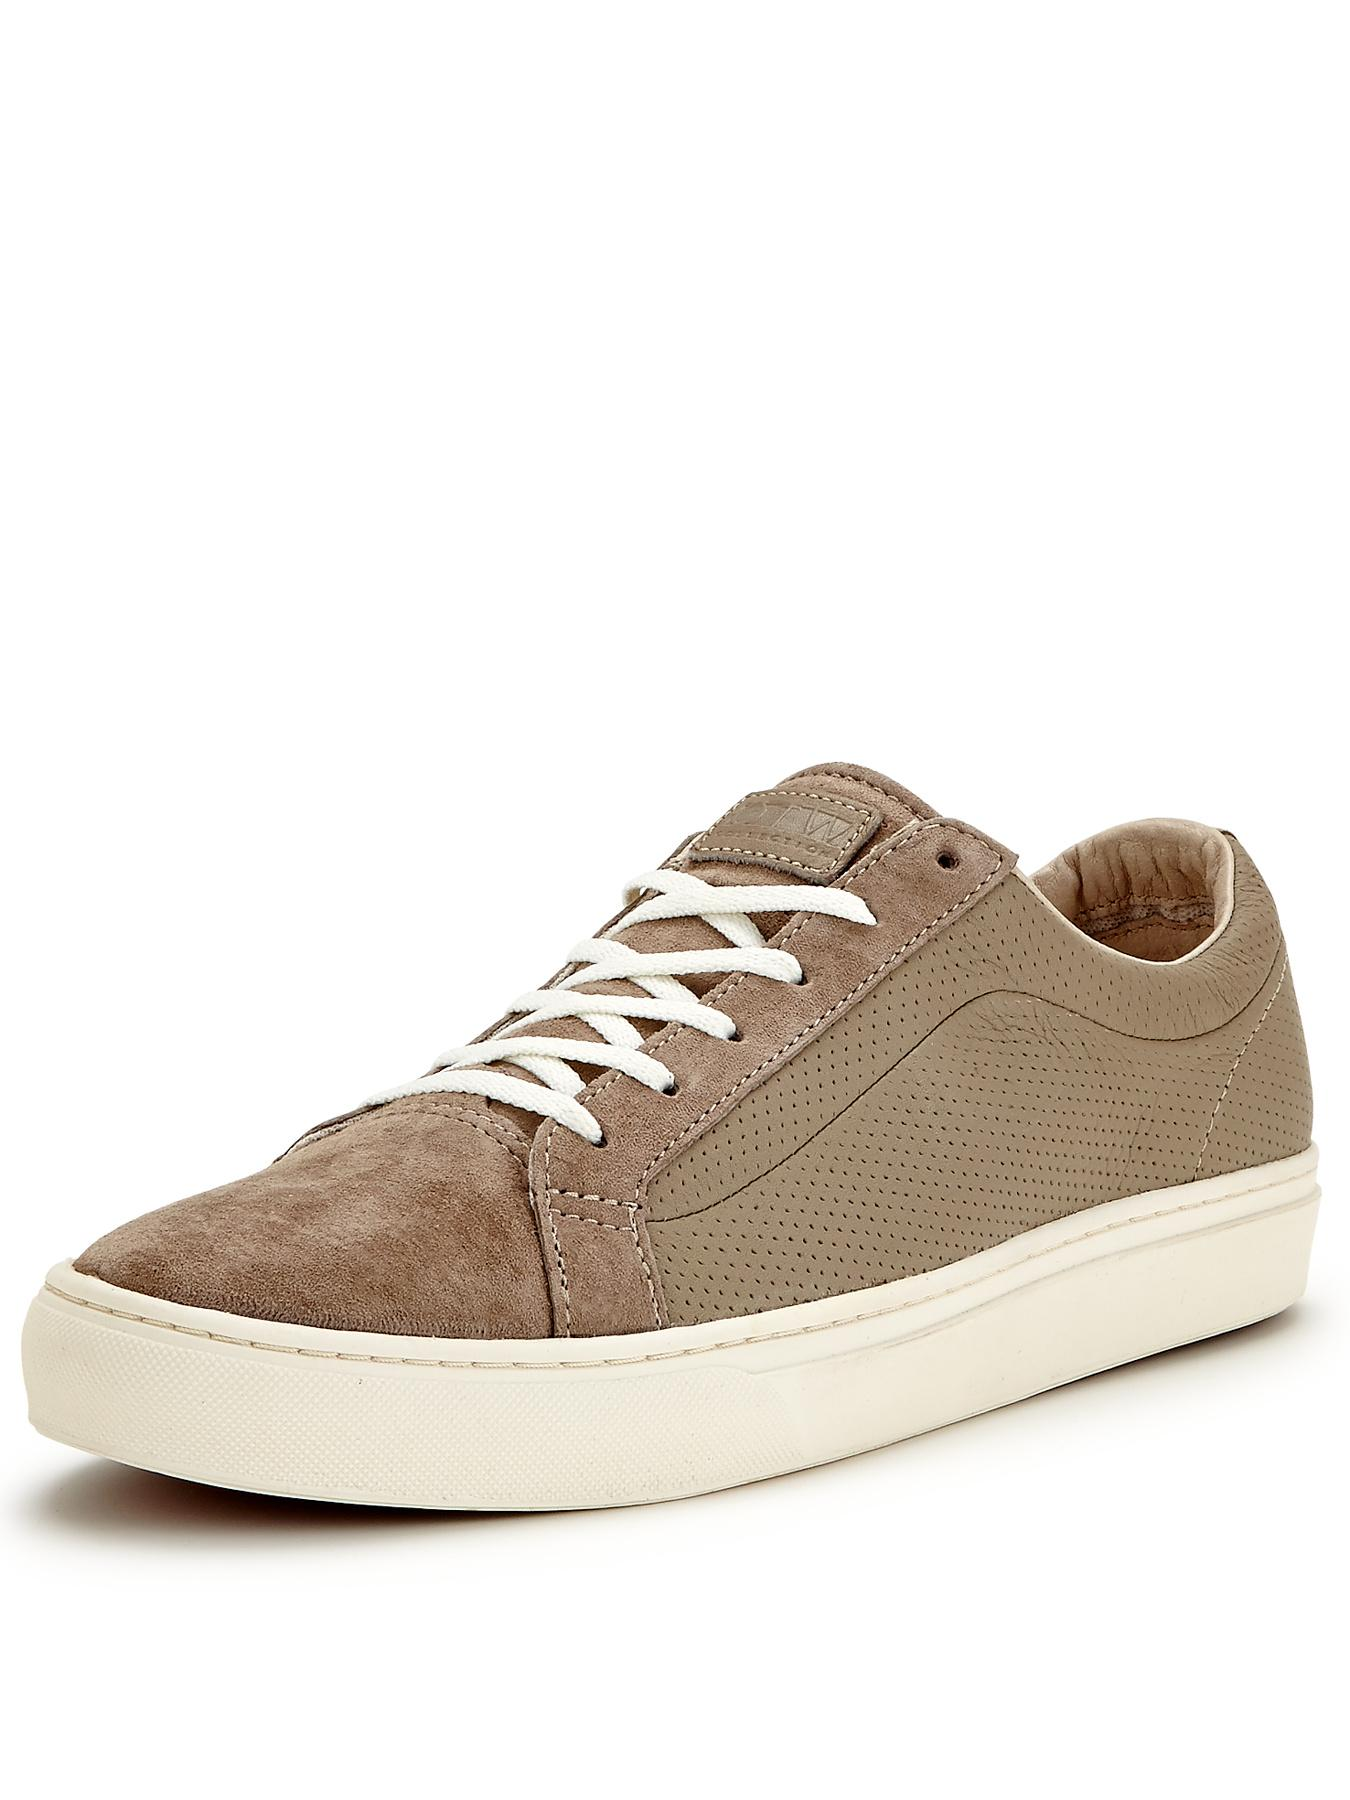 Vans Whitlock Trainers